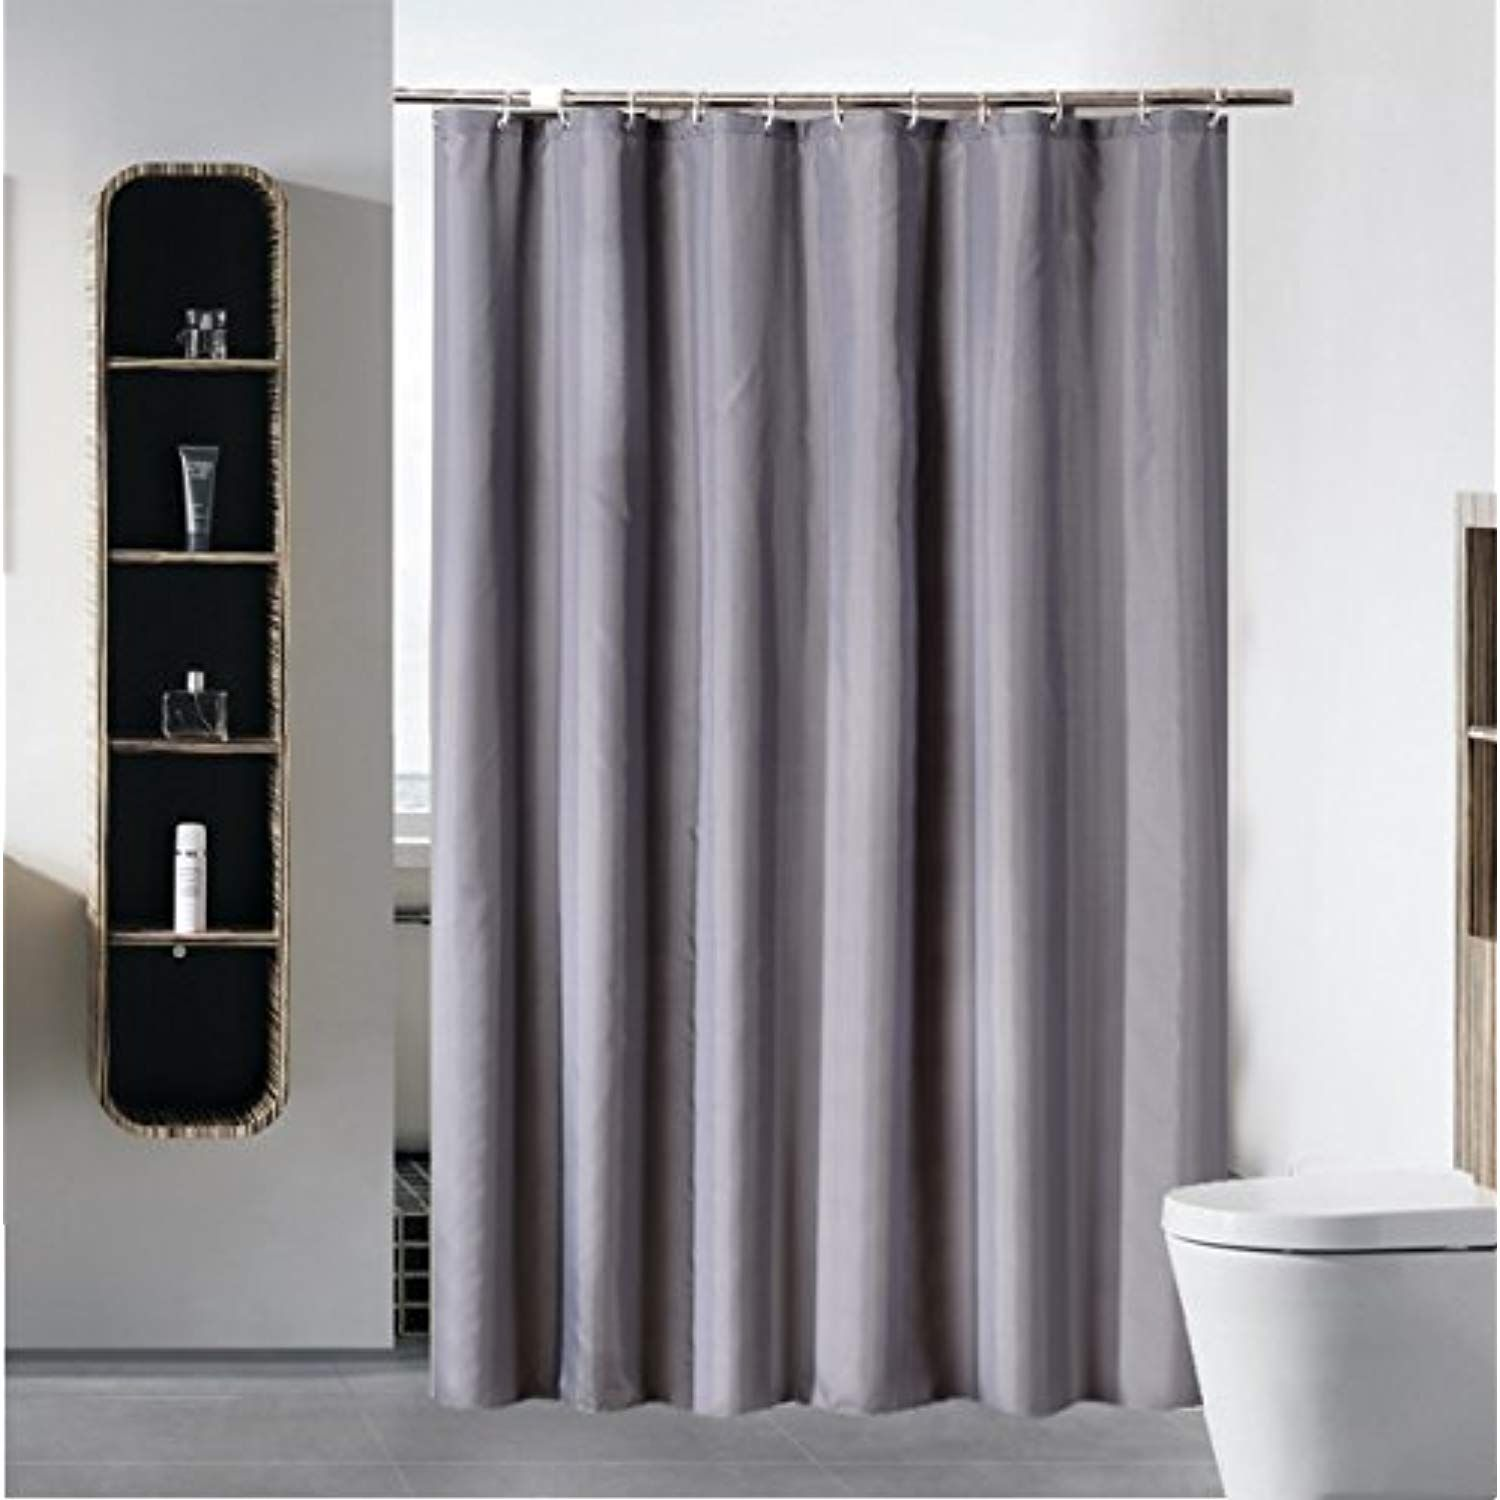 Shower Curtain Liner For Bathroom Water Repellent Fabric Mildew